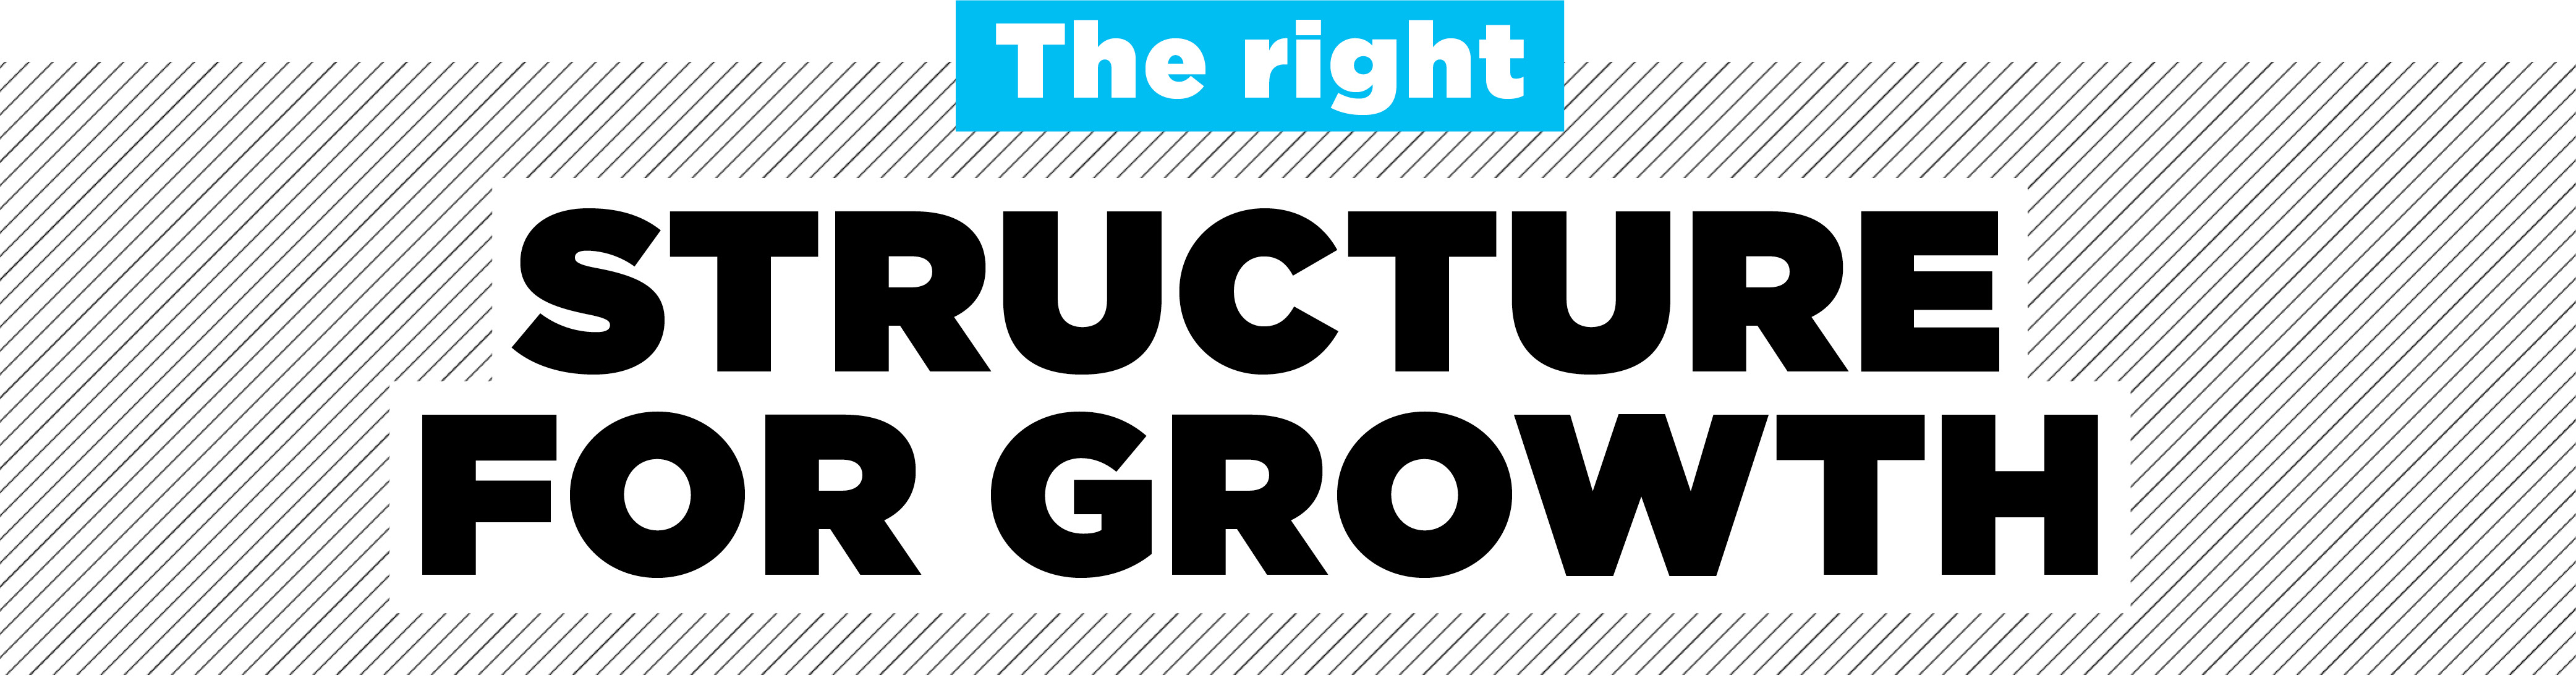 the right structure for growth